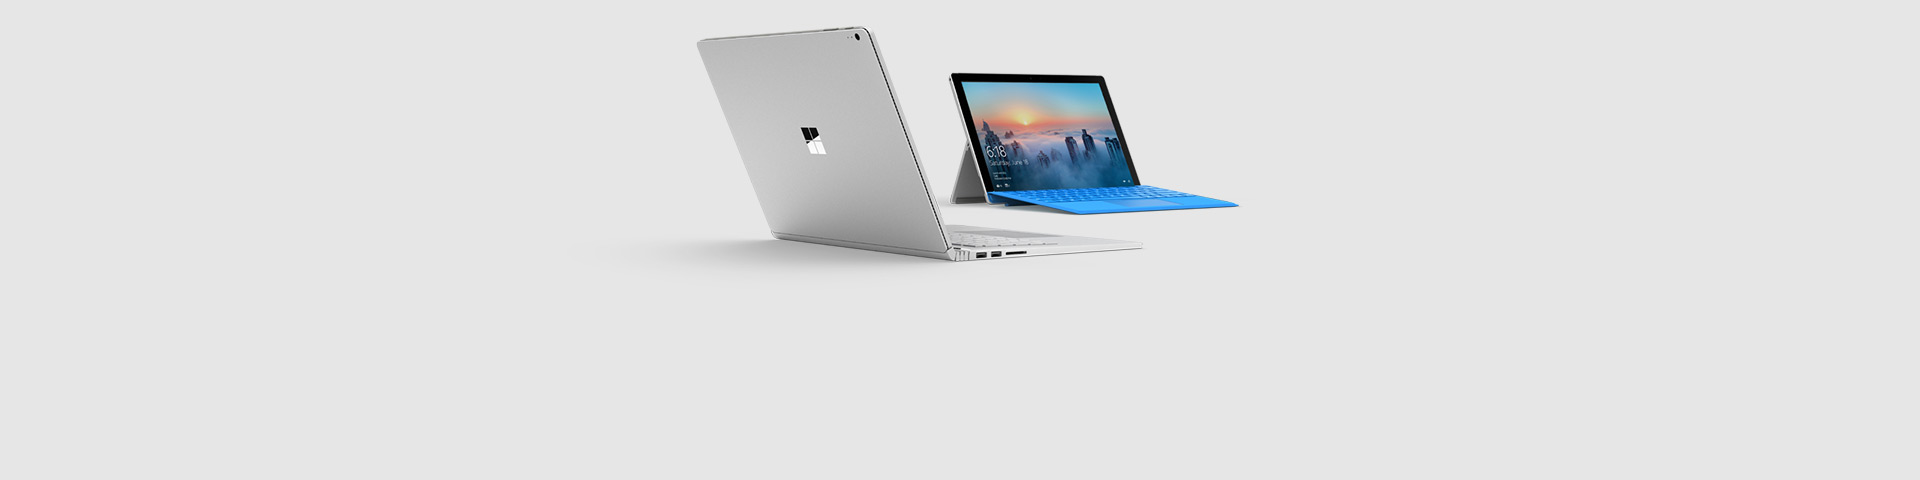 Two Surface devices